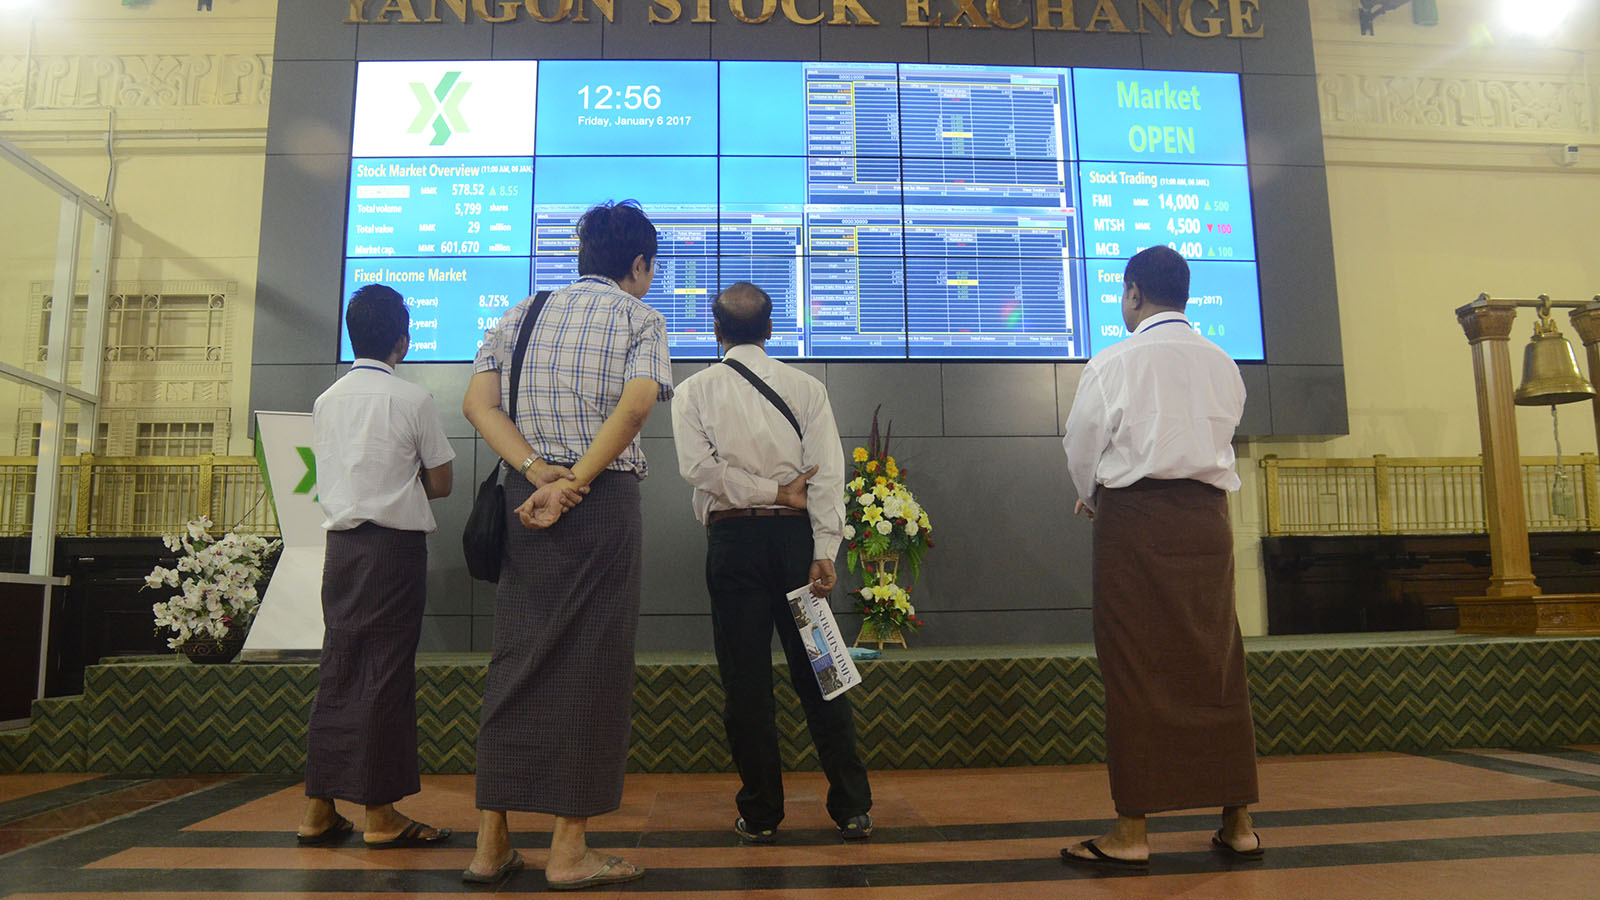 People look at the electronic board showing the stock exchange rate in Yangon Stock Exchange. Photo: Phoe Khwar